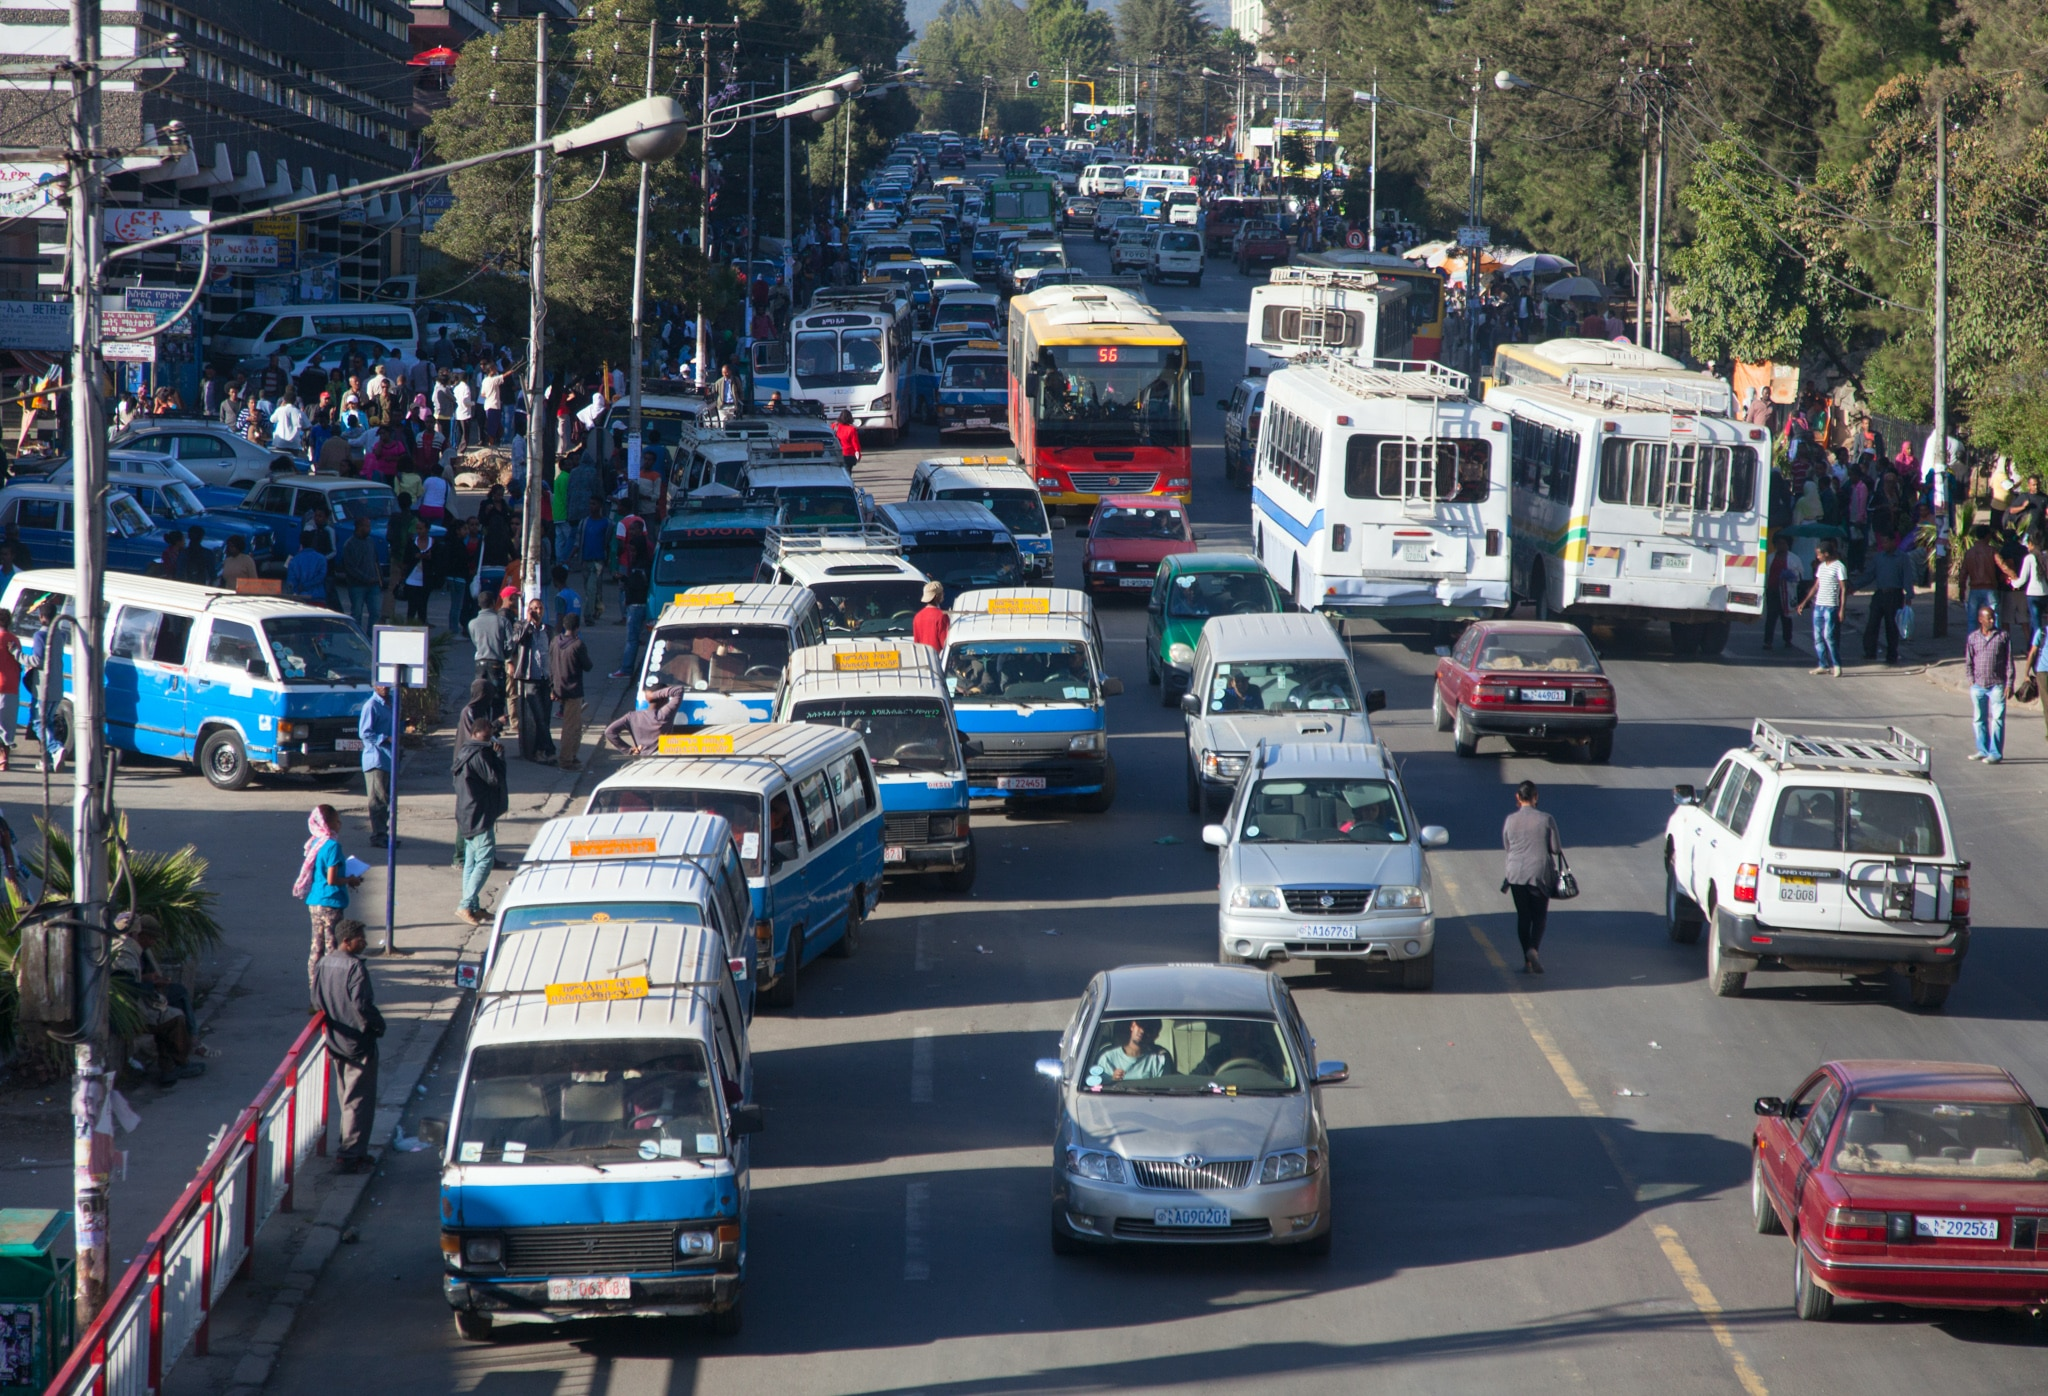 Cars and trucks on a street (© Shutterstock)